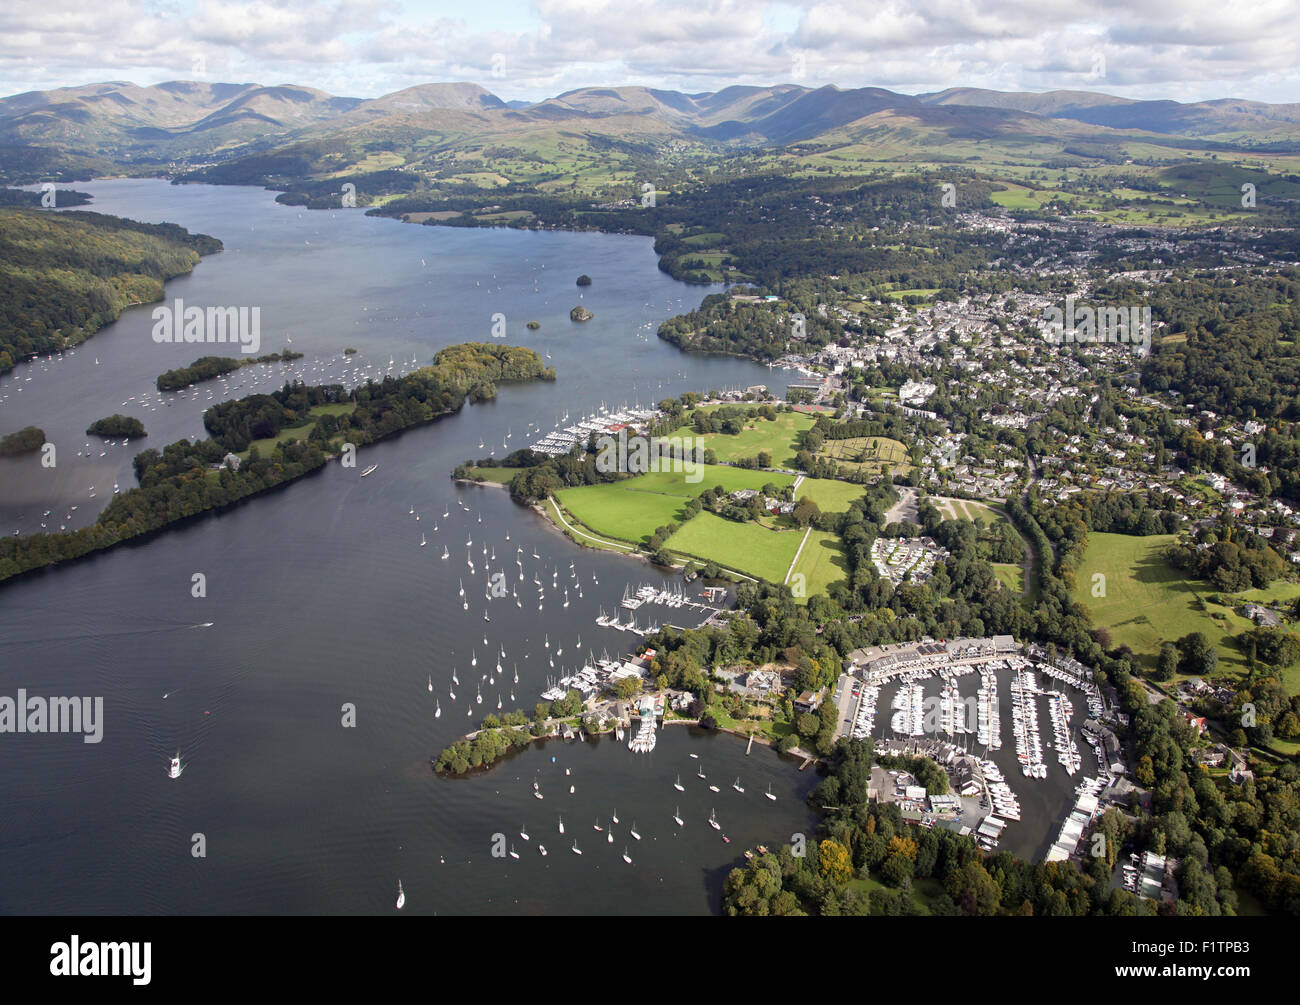 aerial view of Bowness and Windermere at Lake Windermere, Cumbria, UK - Stock Image